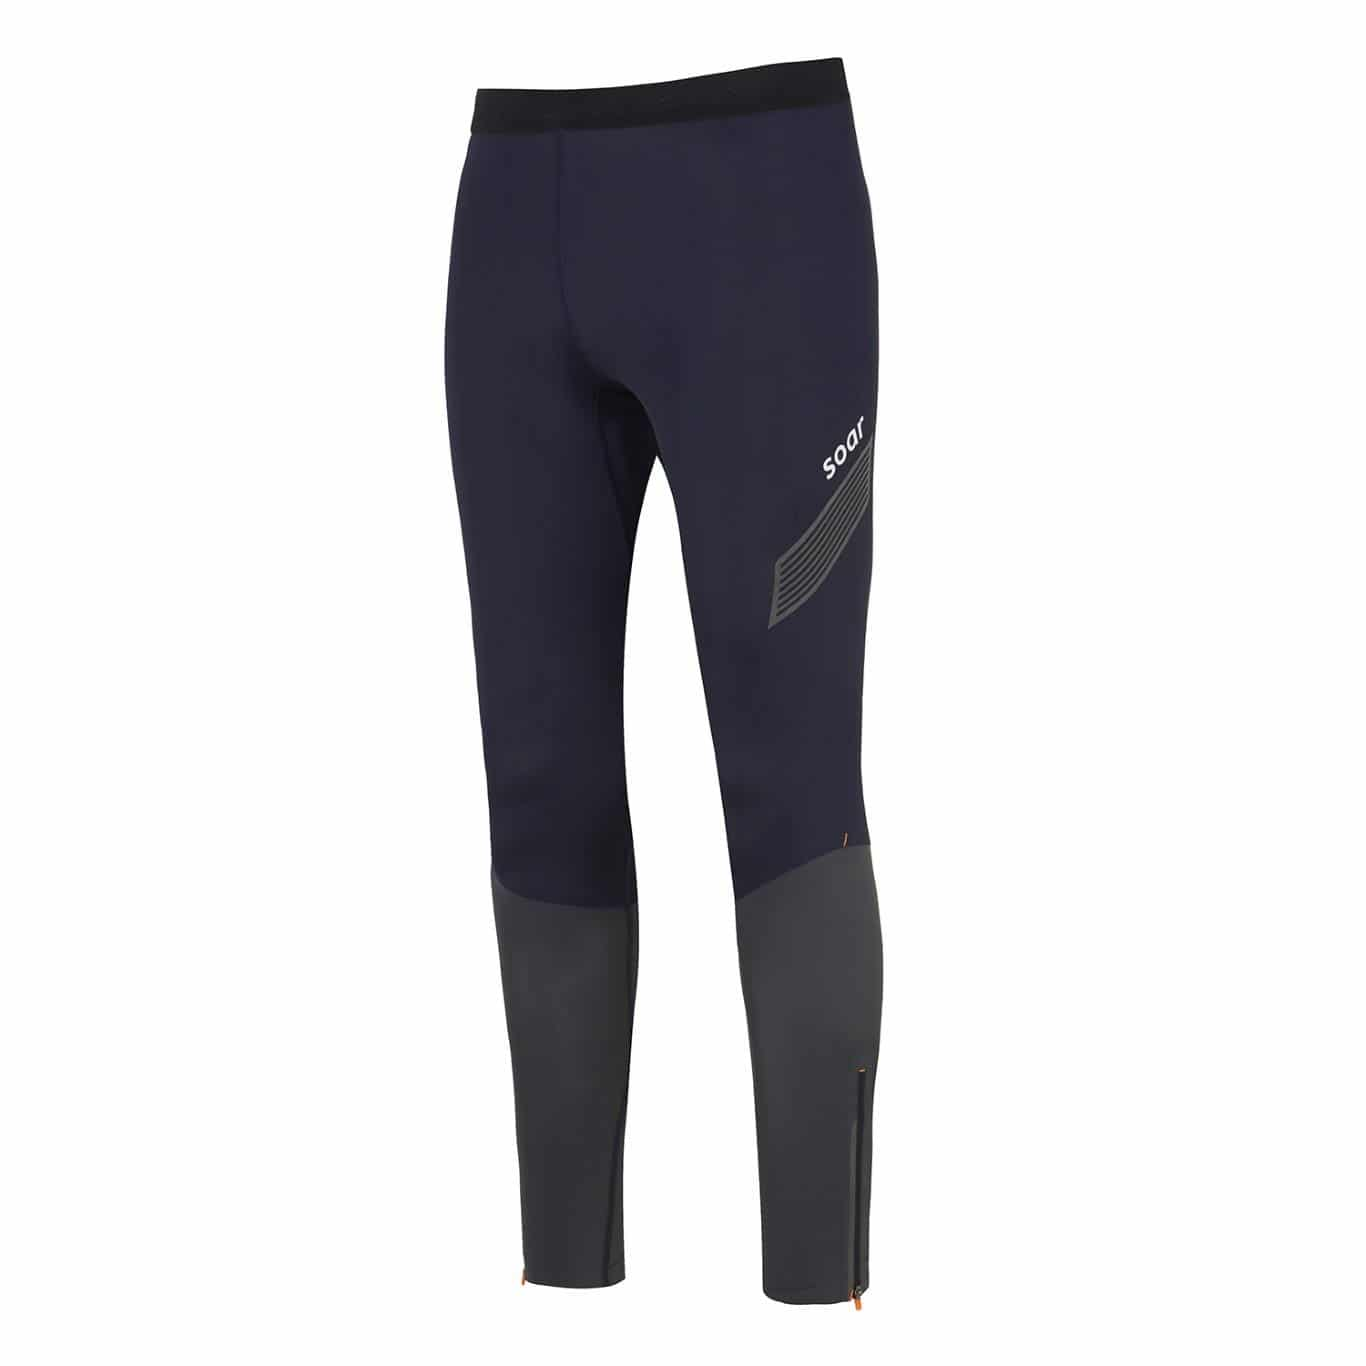 Soar Dual Fabric Tights 2.0